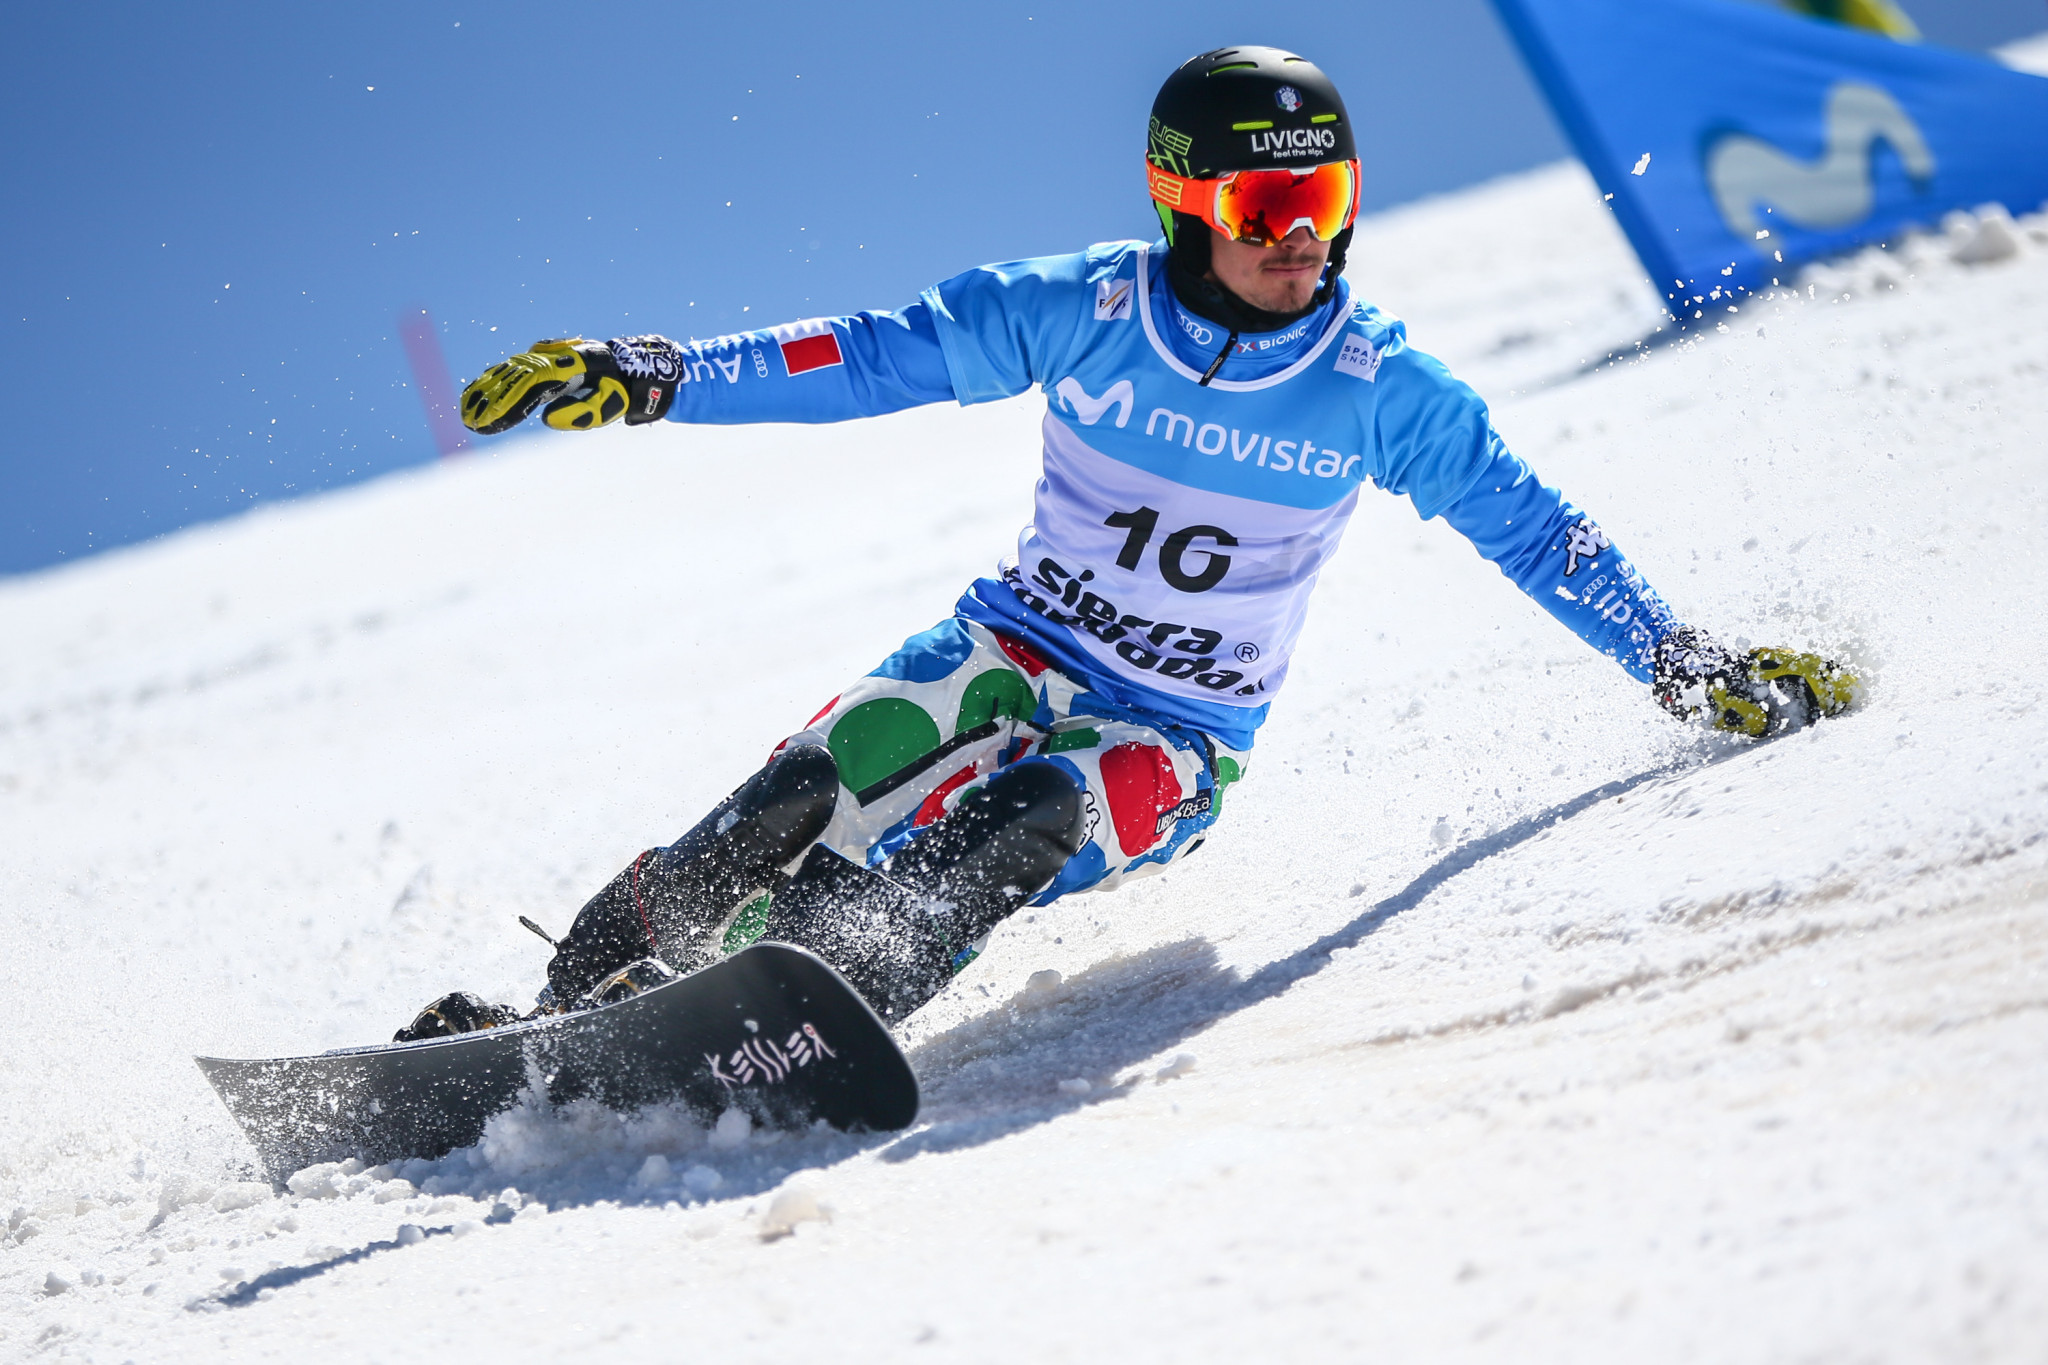 Parallel slalom action continues at FIS Alpine Snowboard World Cup in Piancavallo